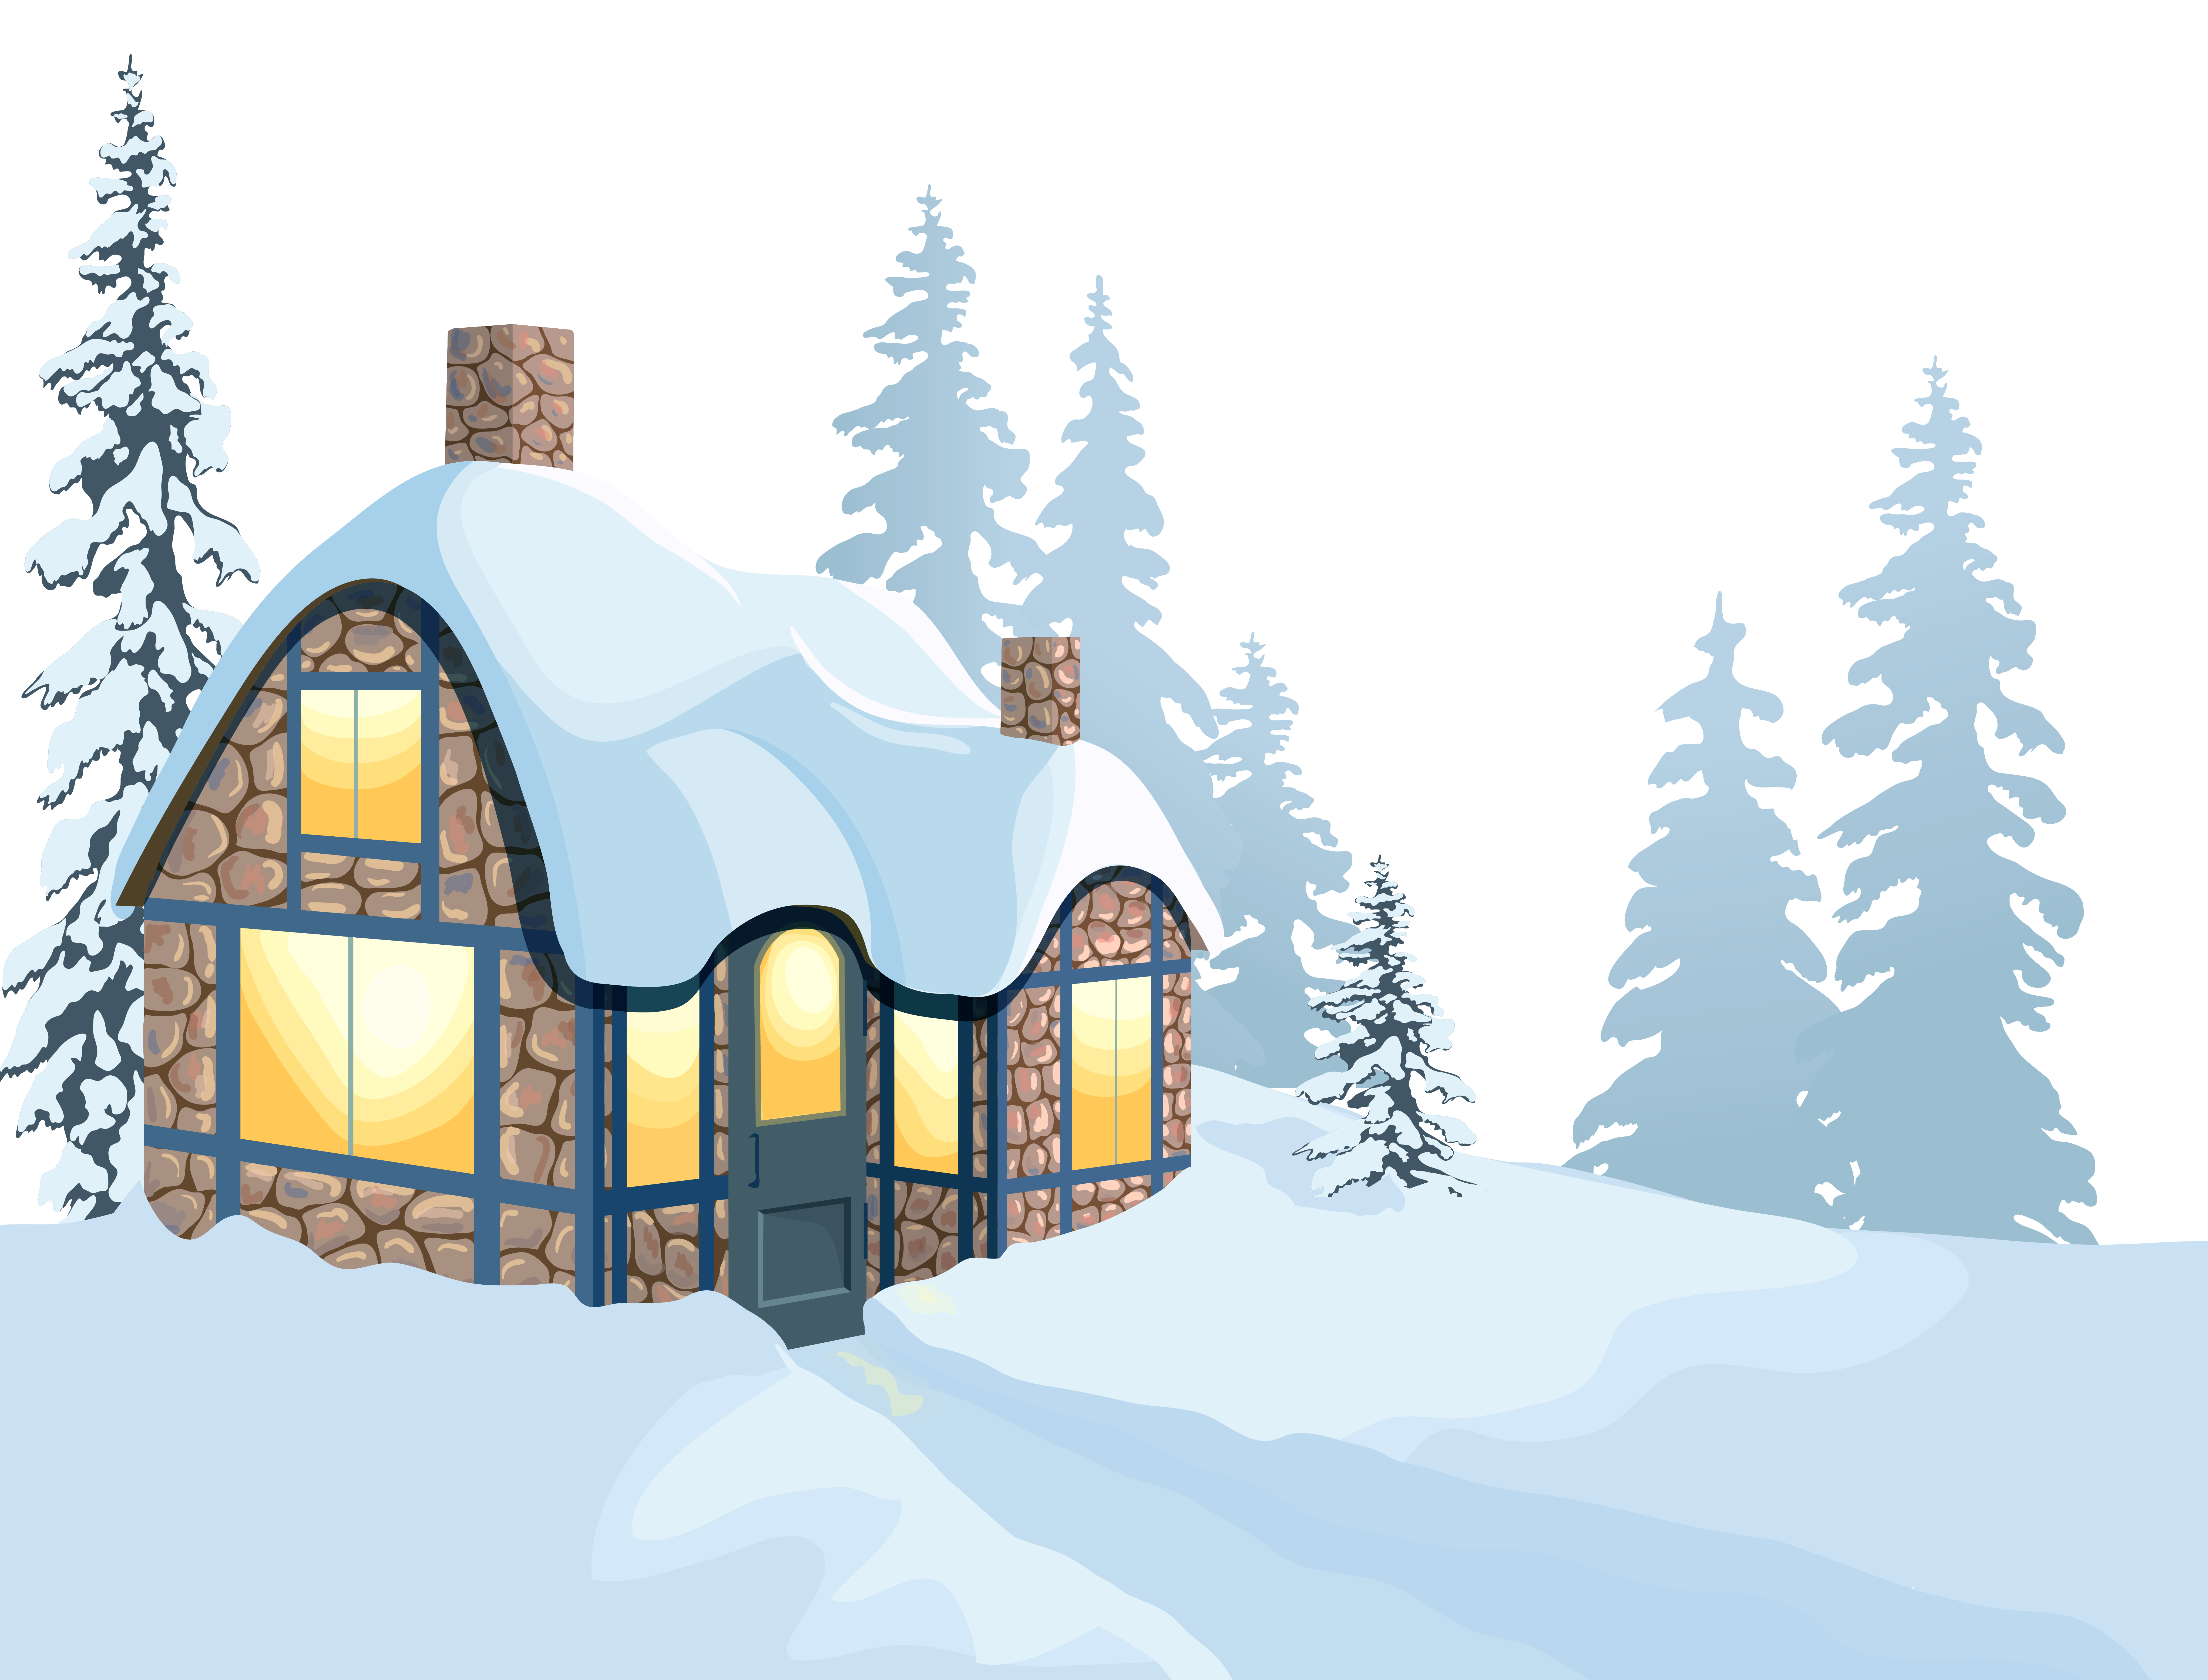 House in snow clipart clip art freeuse library Snow Clipart | jokingart.com clip art freeuse library